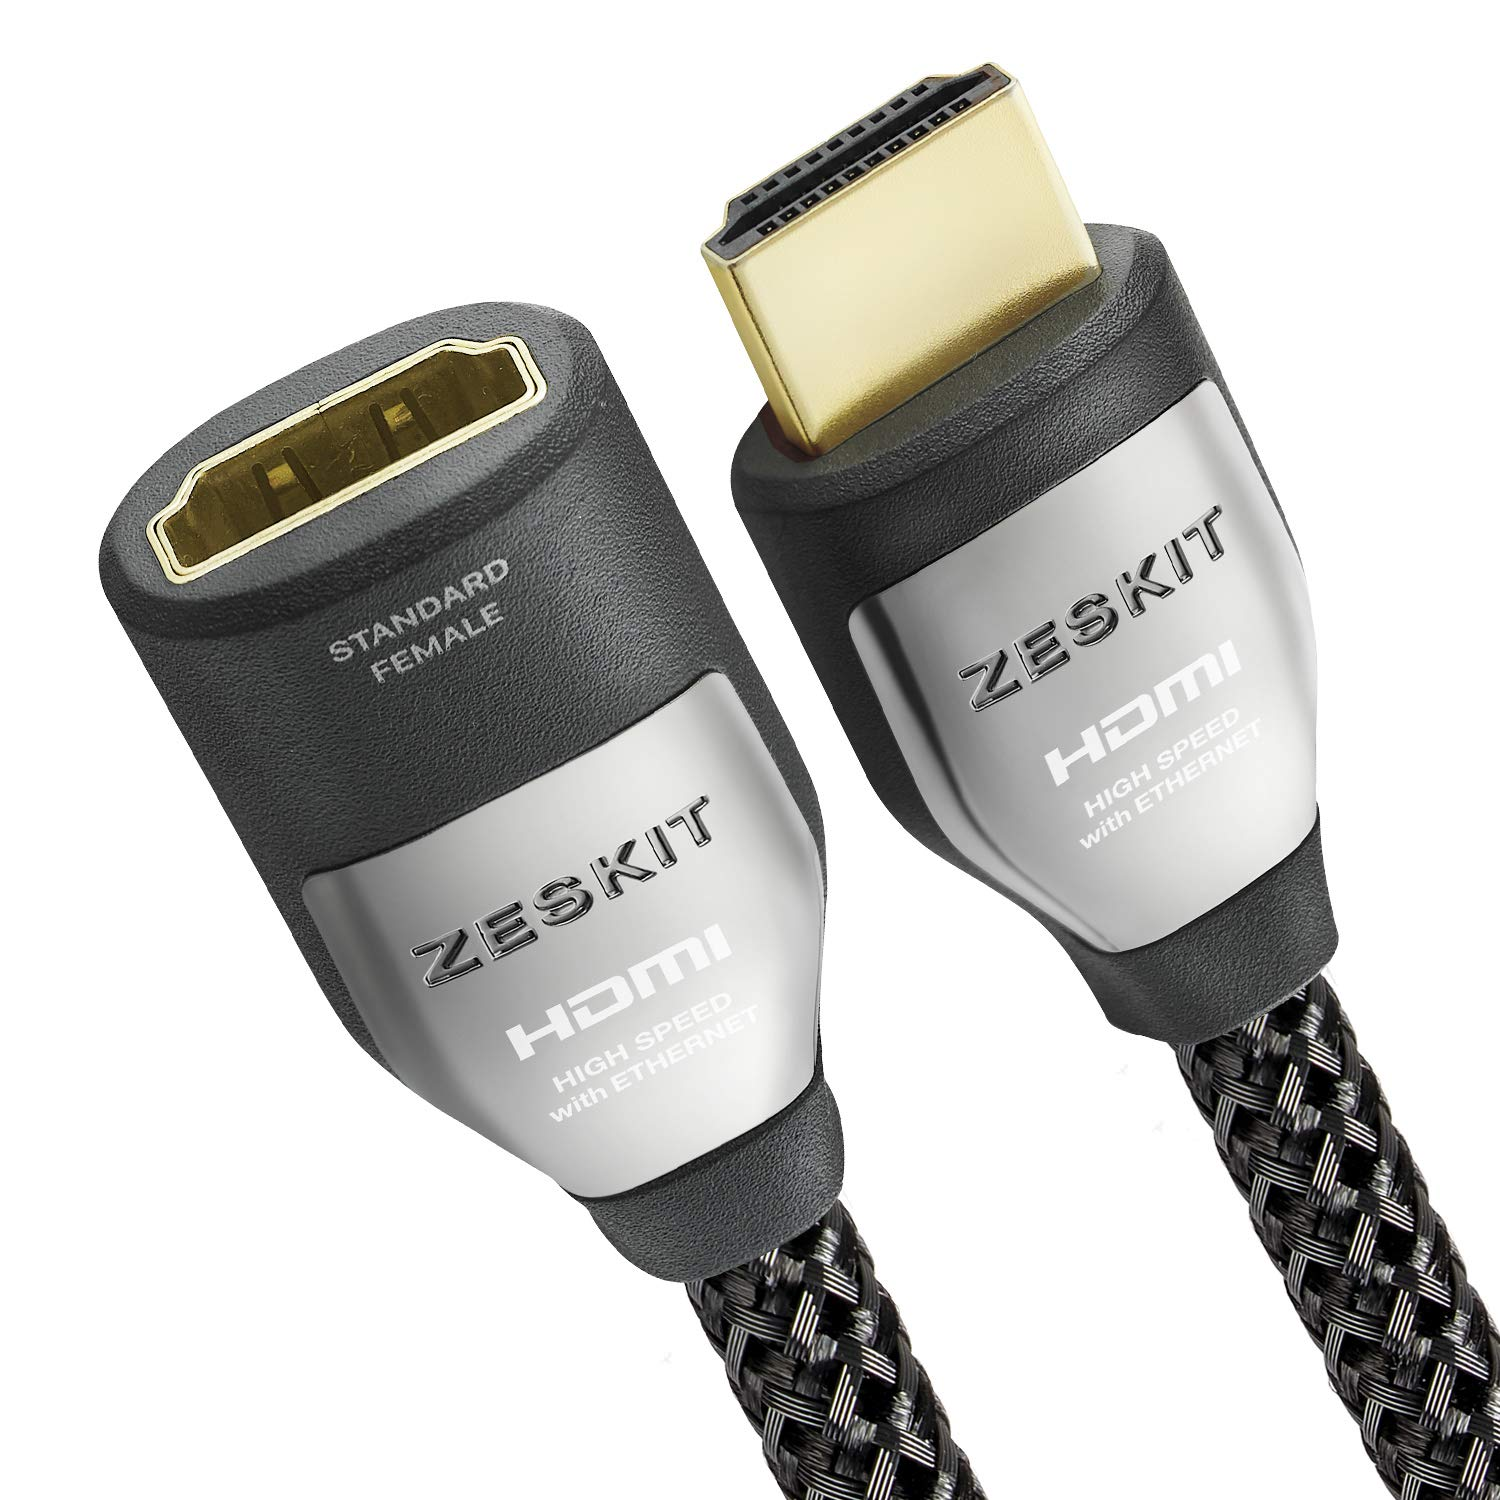 HDMI 2.0 Extension Cable 6.5ft Cinema Plus (4K 60Hz HDR Dolby Vision HDCP 2.2) Exceed 22.28Gbps Compatible with Roku Fire Stick/TV Xbox PS4 Pro Apple TV 4K Netflix LG Sony Samsung (Male to Female)